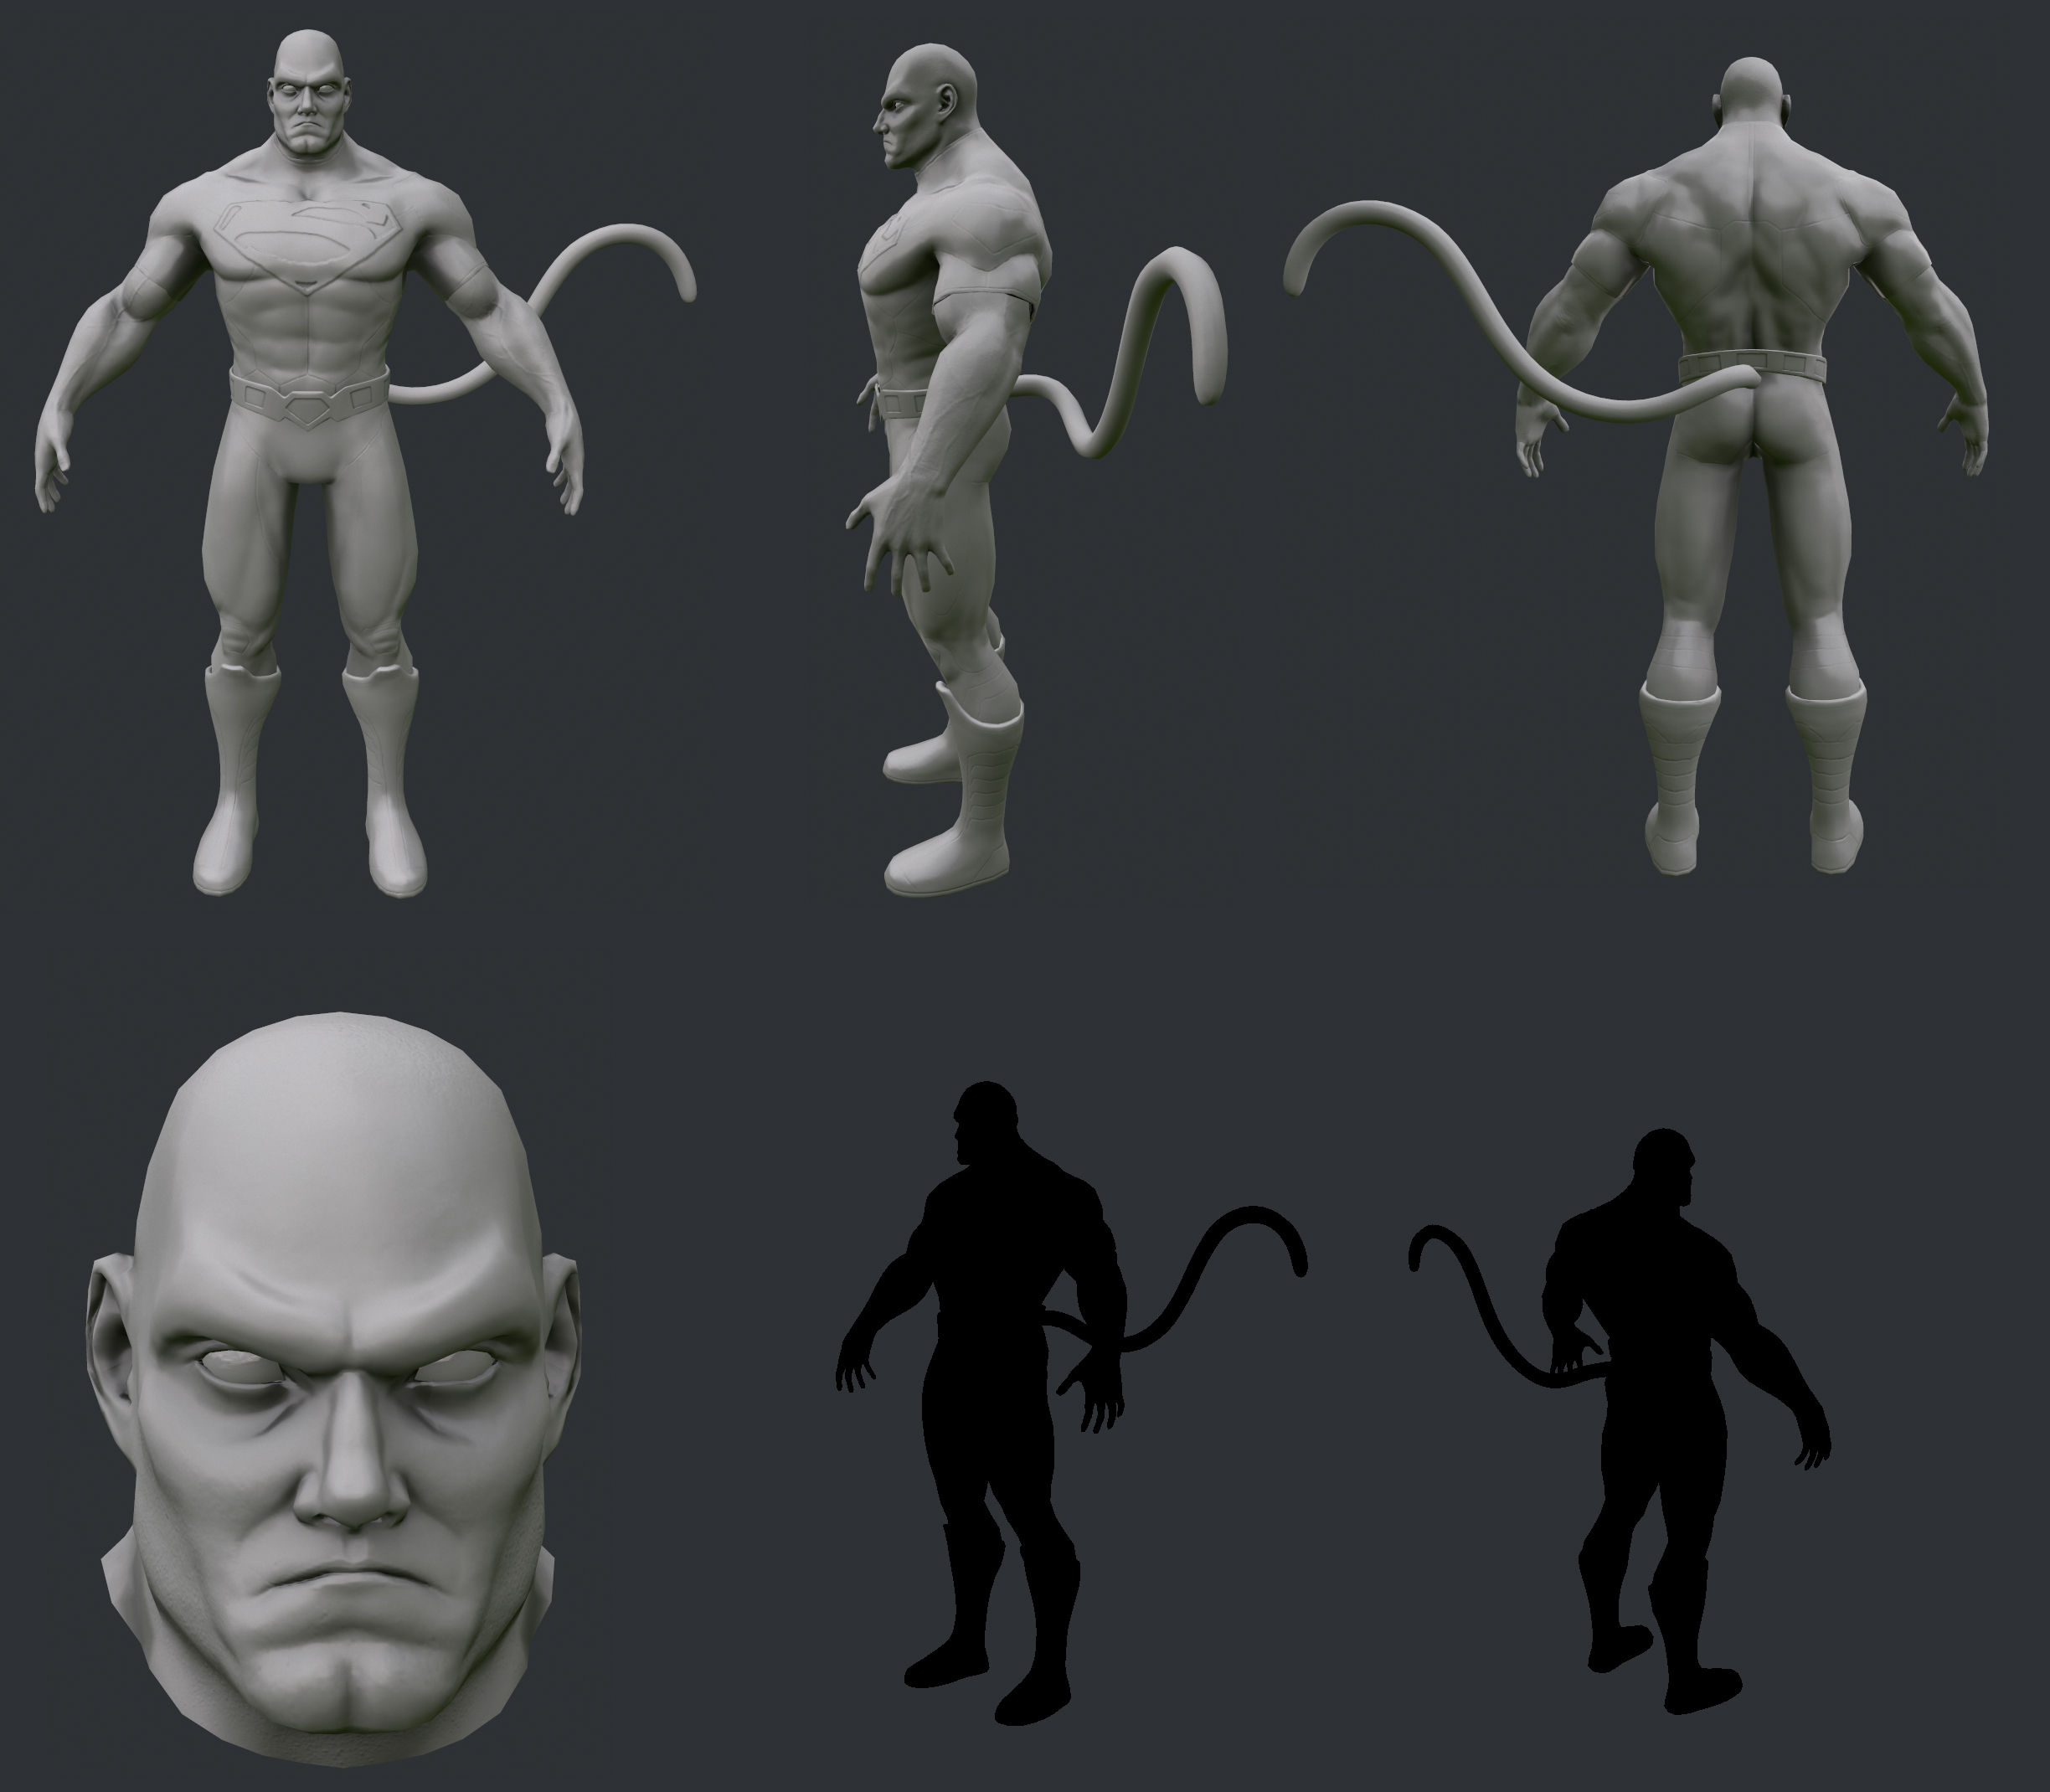 comicon_15_wip07_by_theartistictiger-d8m8g9j.jpg